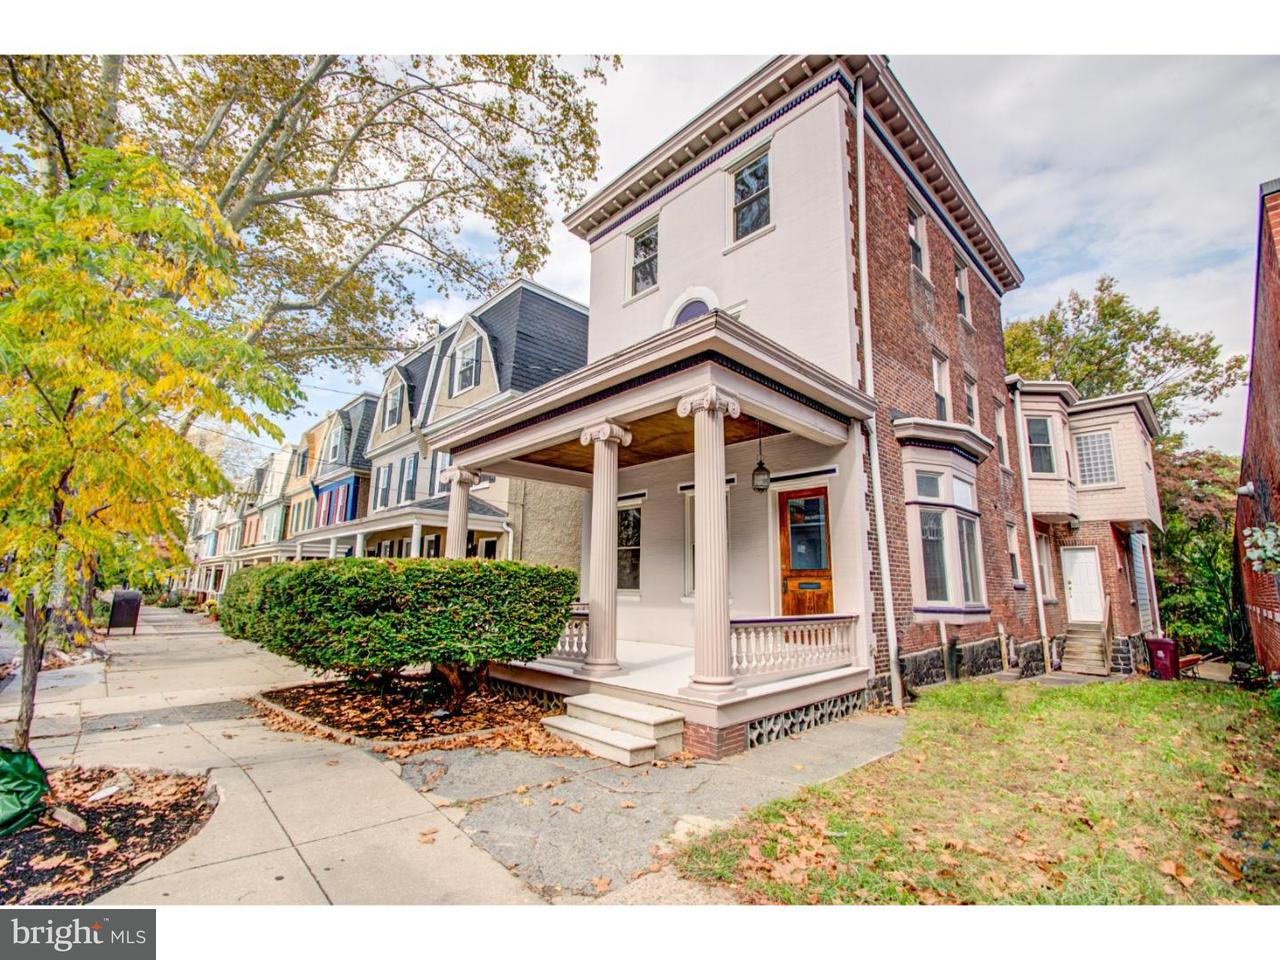 Single Family Home for Rent at 207 W 14TH Street Wilmington, Delaware 19801 United States